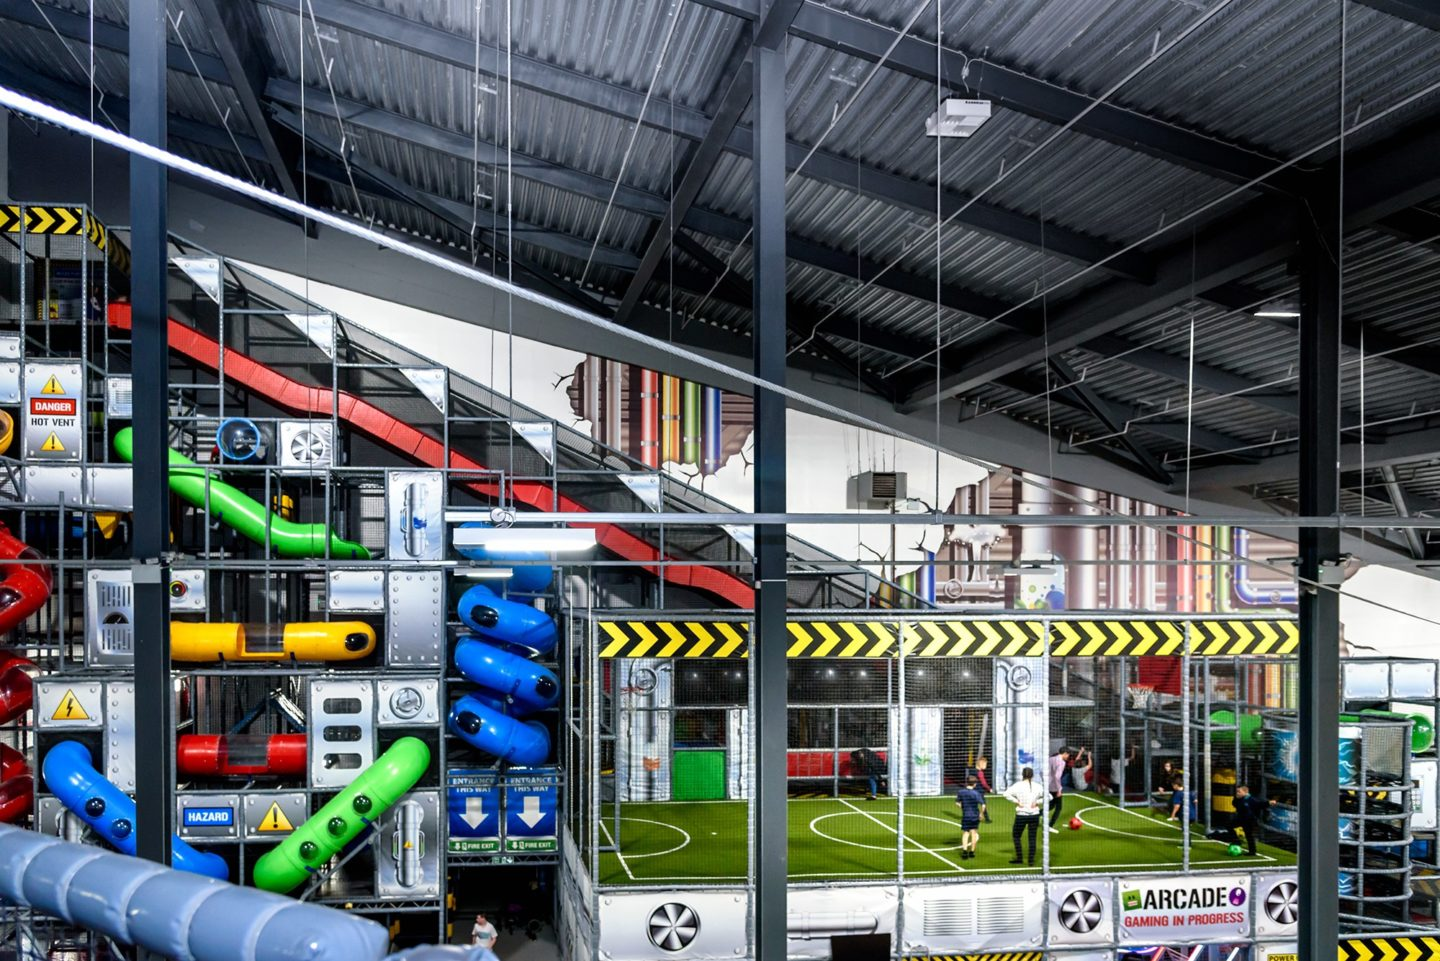 Things To Do With Kids in Manchester - Play Factore